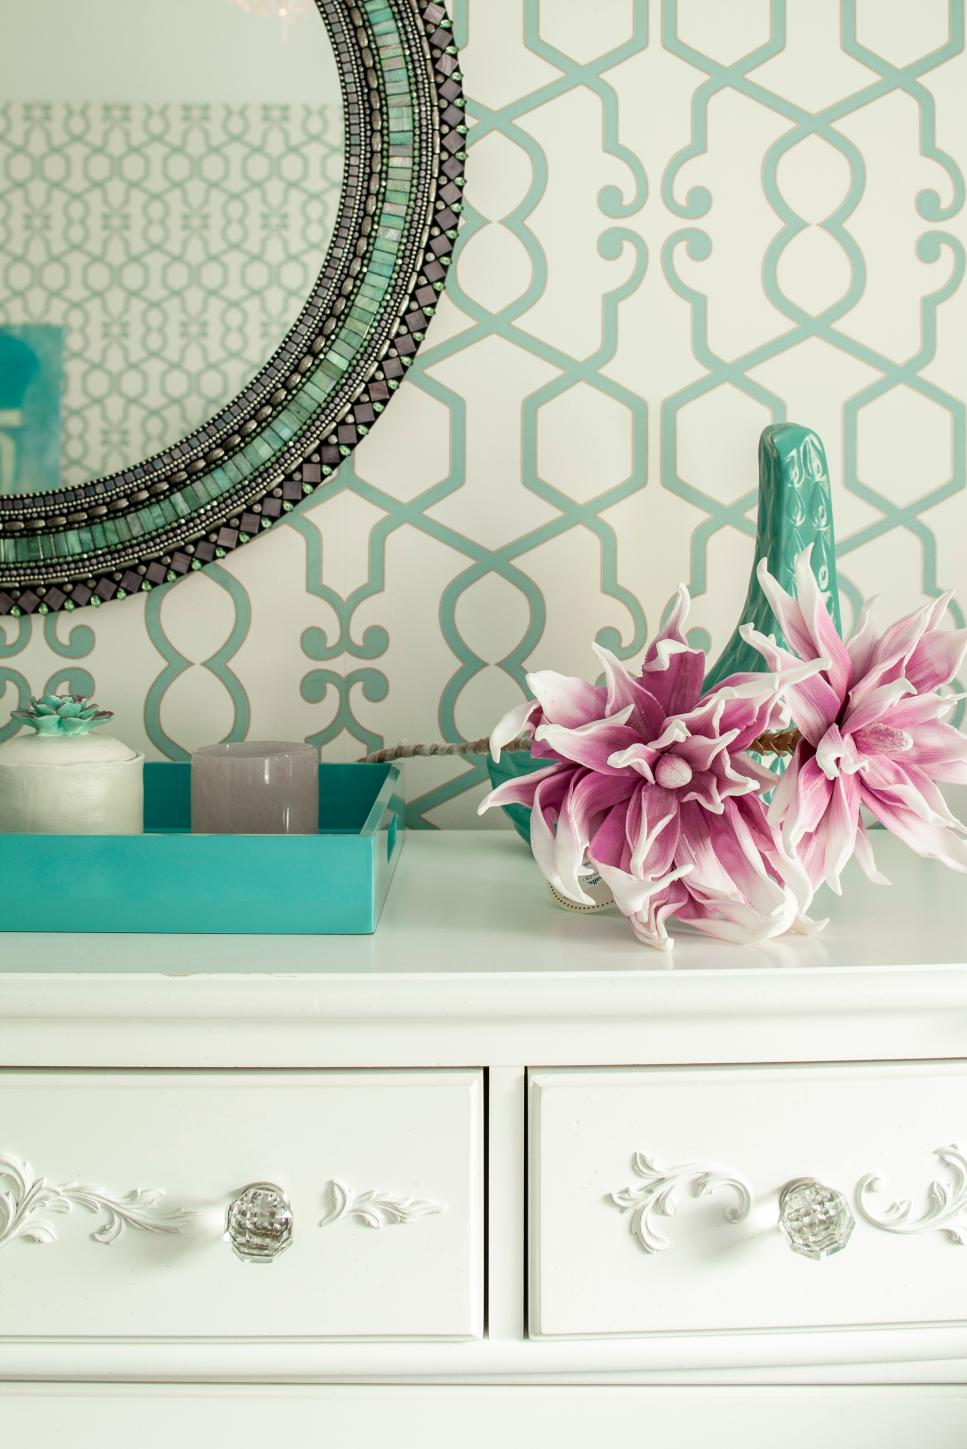 White Dresser Against White and Turquoise Patterned Wall